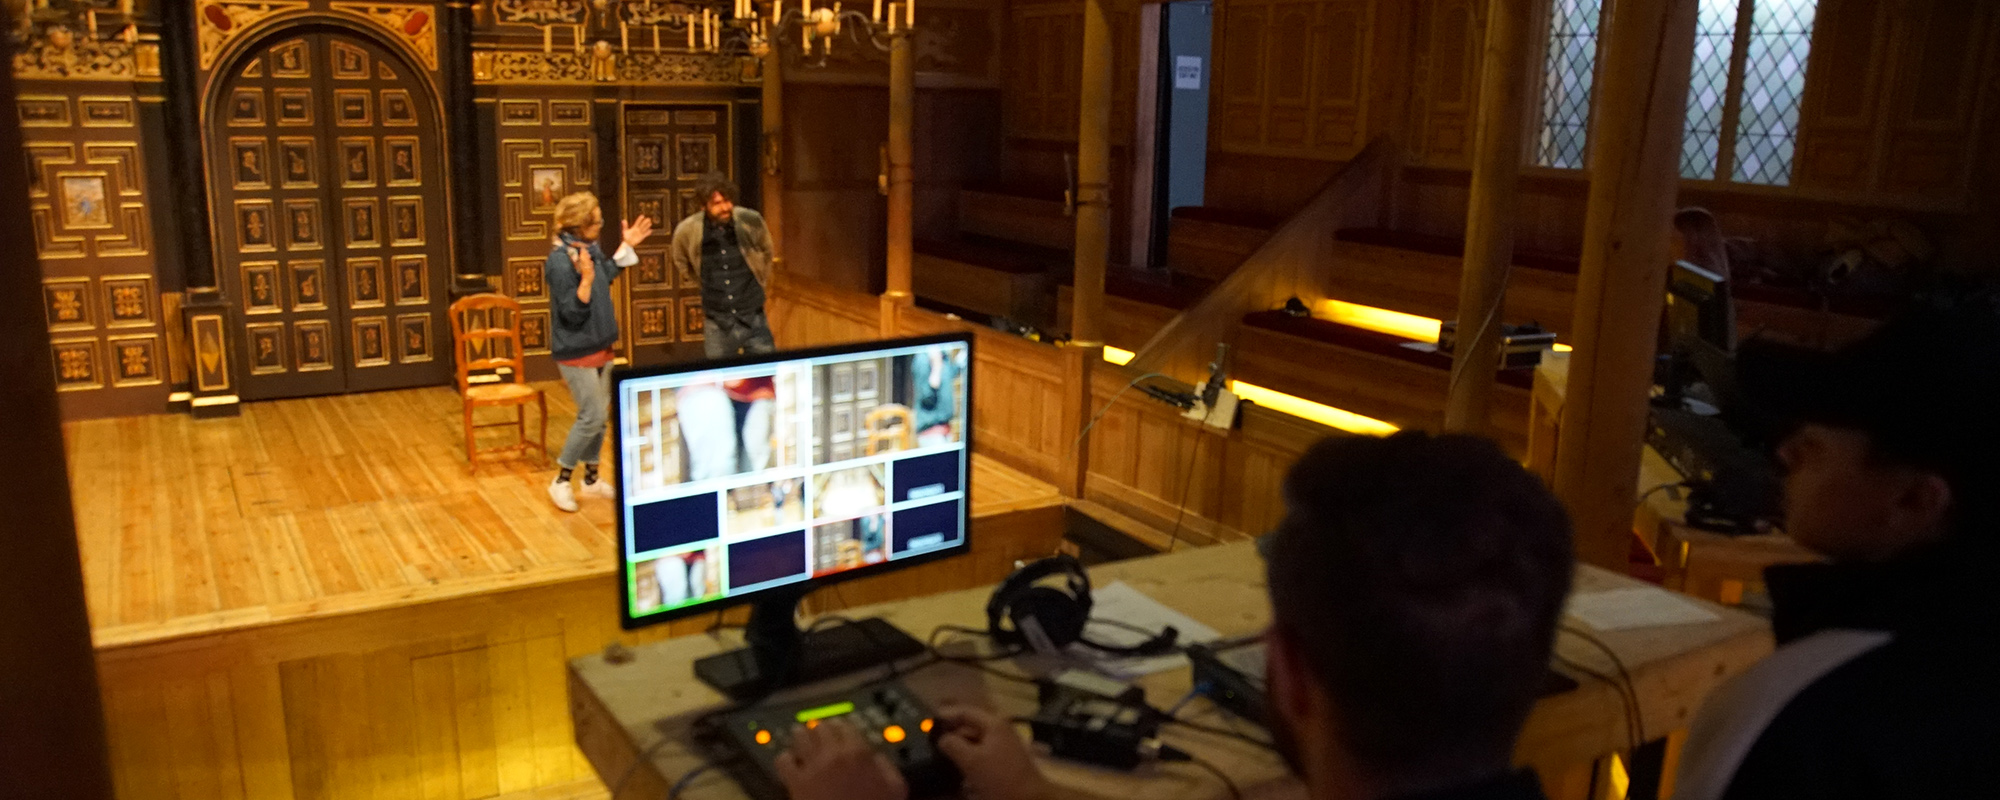 An image of the Sam Wanamaker PLayhouse with two actors rehearsing on the stage and a monitor showing different camera angles